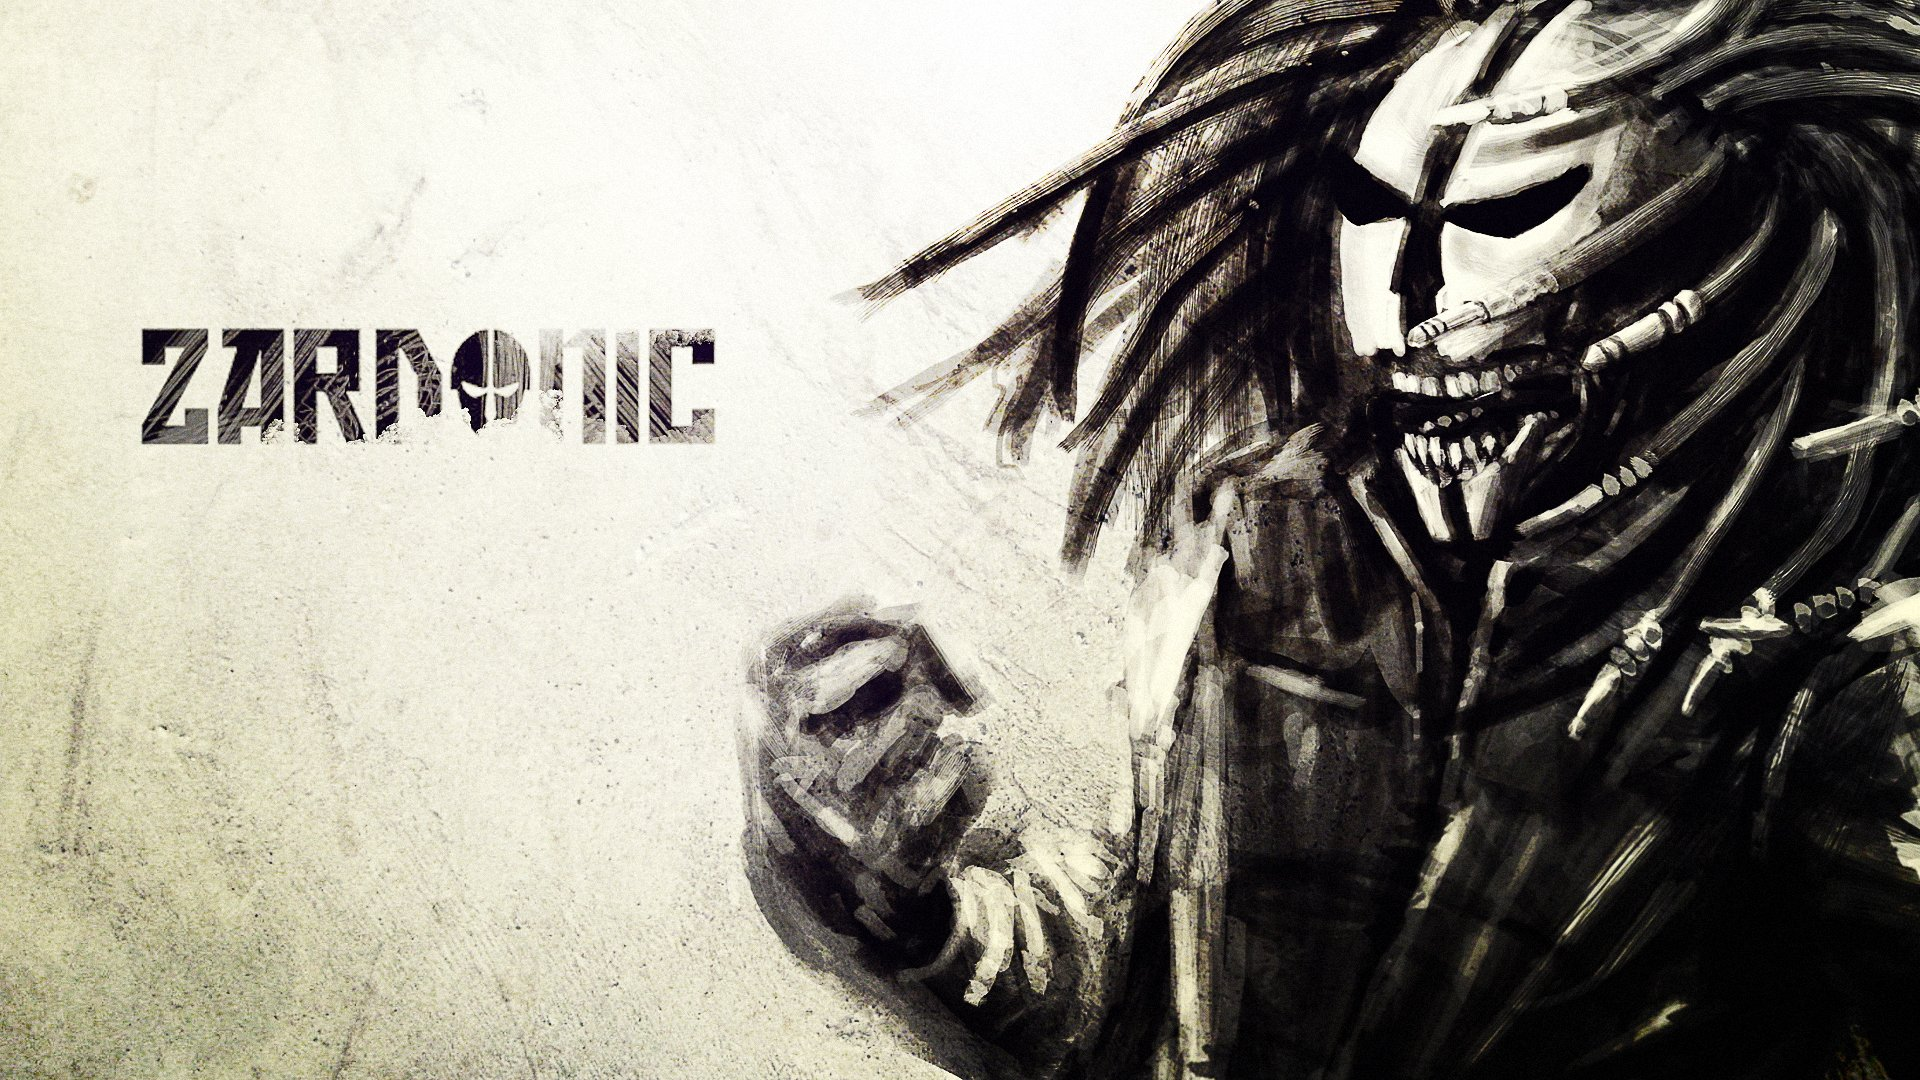 Hotline Miami Iphone Wallpaper Zardonic Wallpapers High Quality Download Free